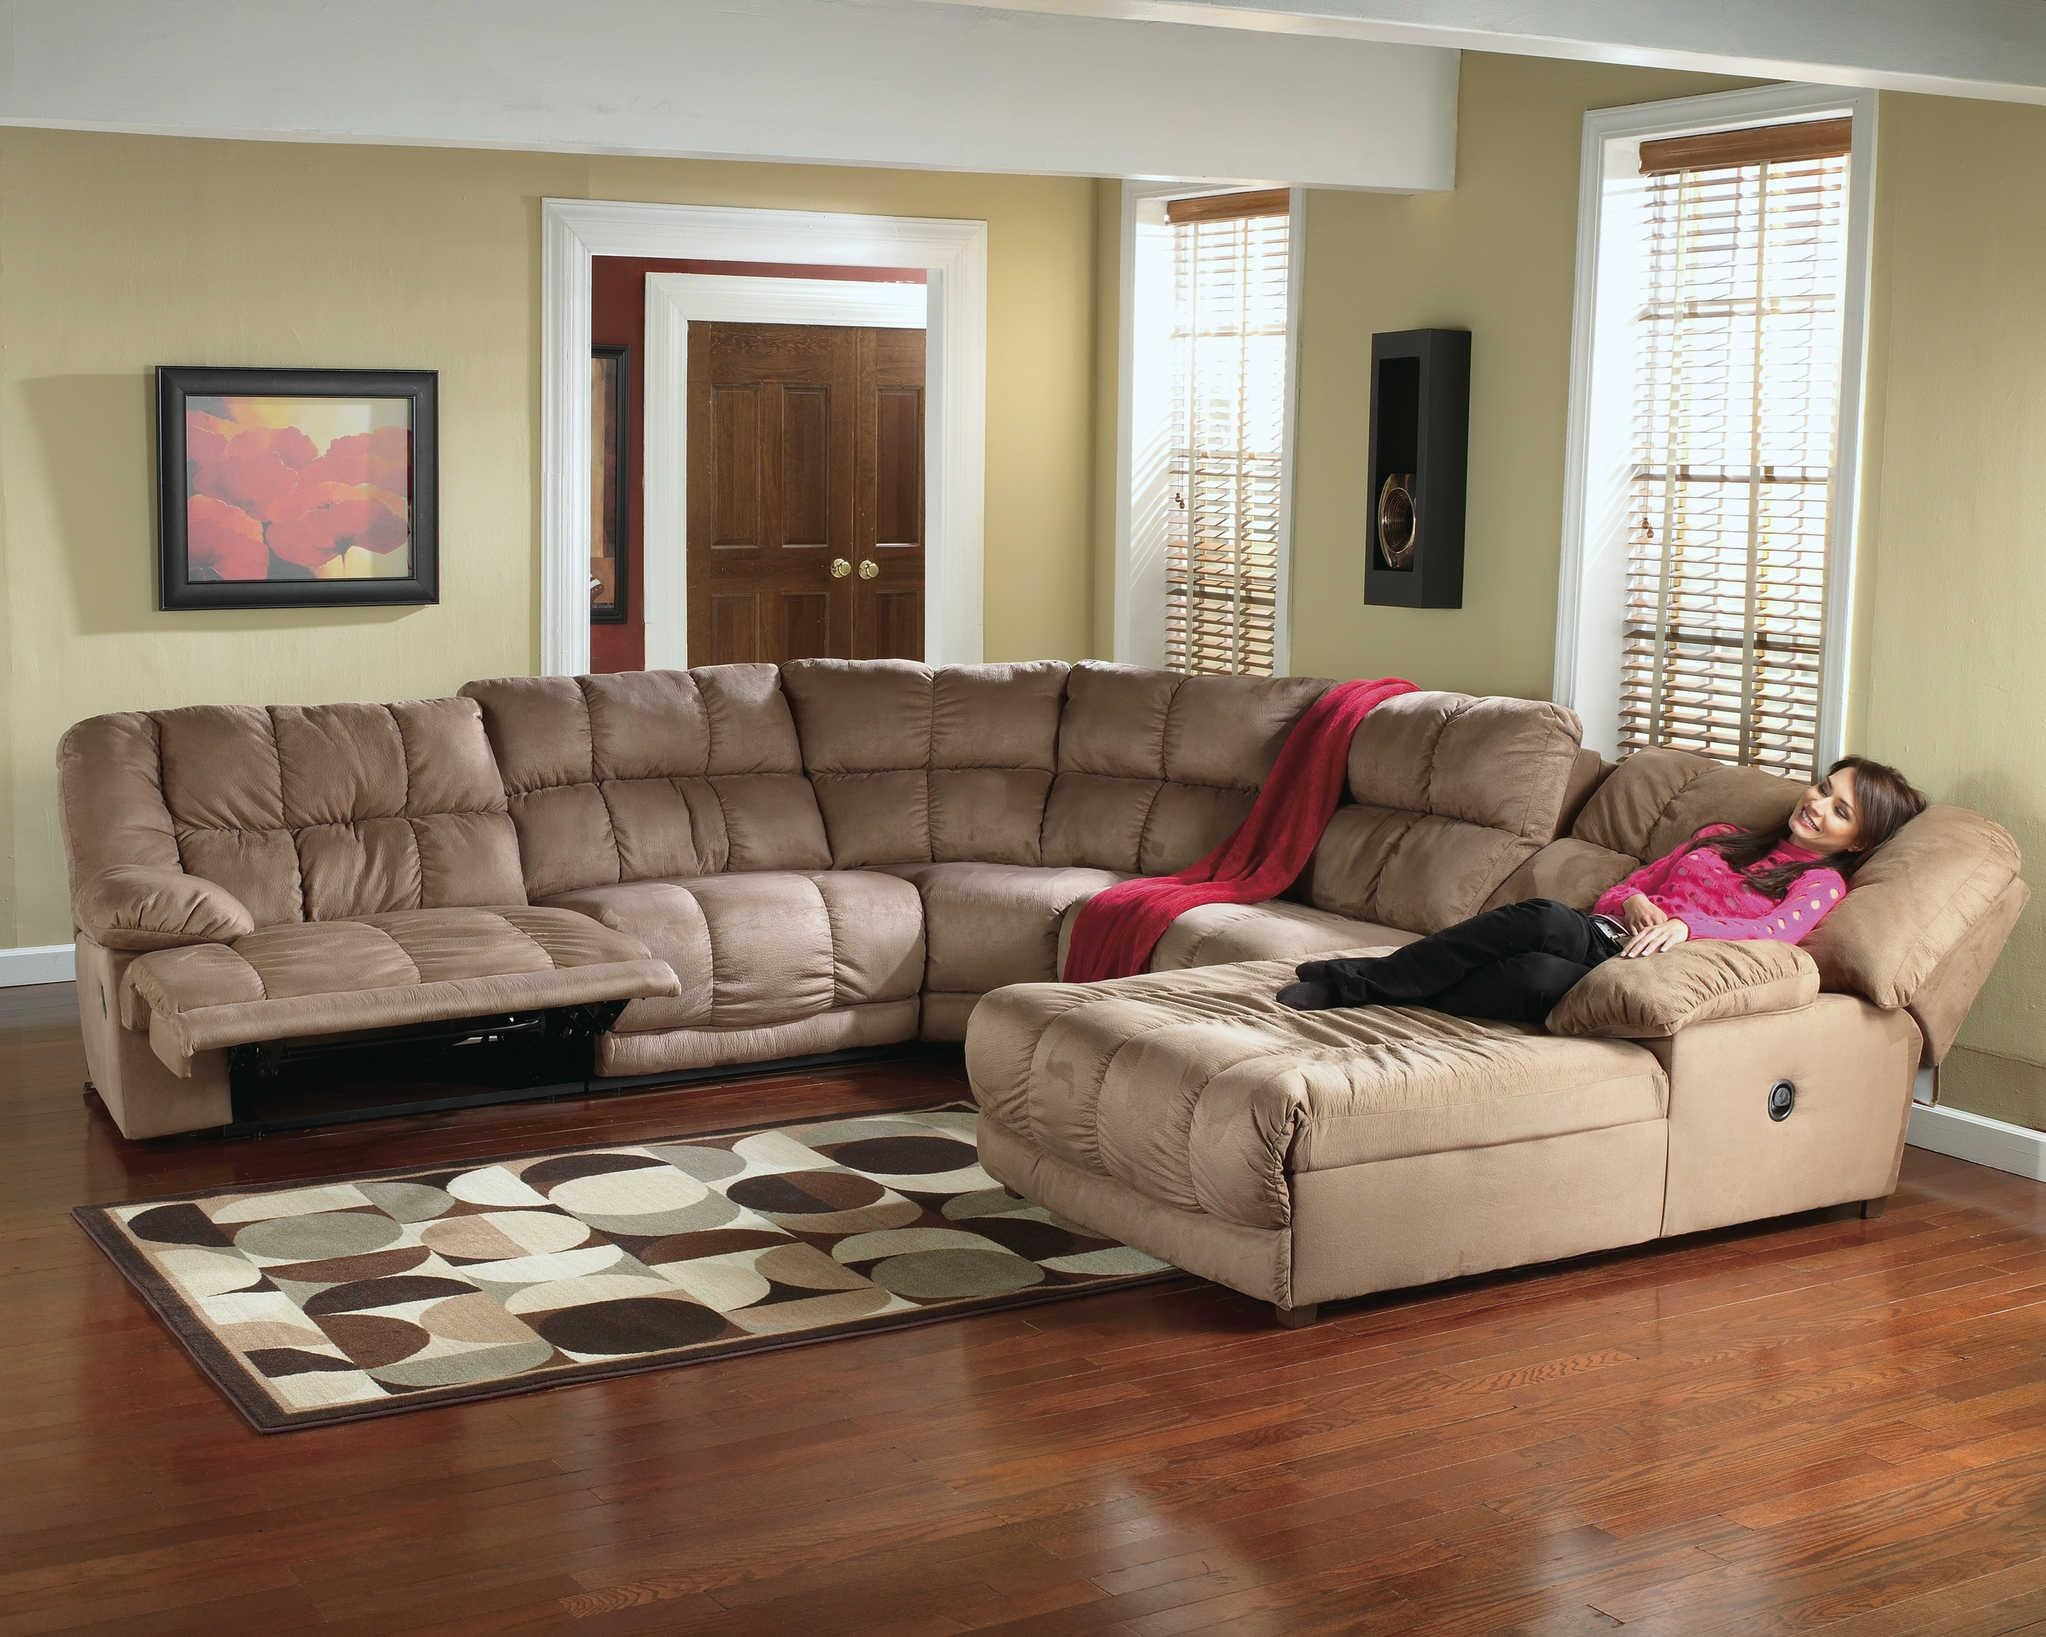 79 Exciting Large Sectional Sofas With Recliners Home Design | Hoozoo Pertaining To Florence Large Sofas (Image 1 of 20)